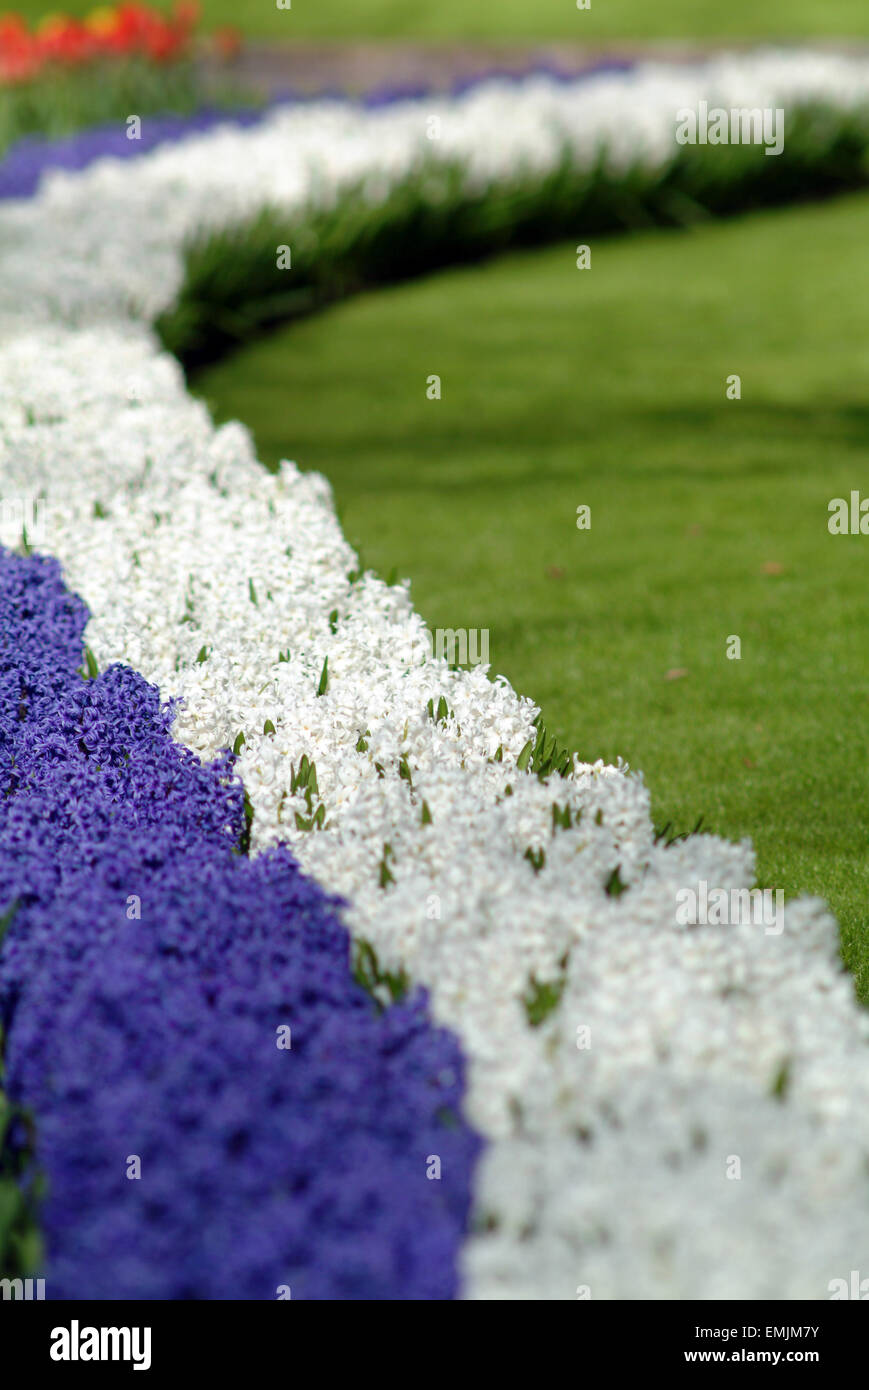 Blue and white Hyacinth (Hyacinthus orientalis) in a row in blossom in a park - Stock Image